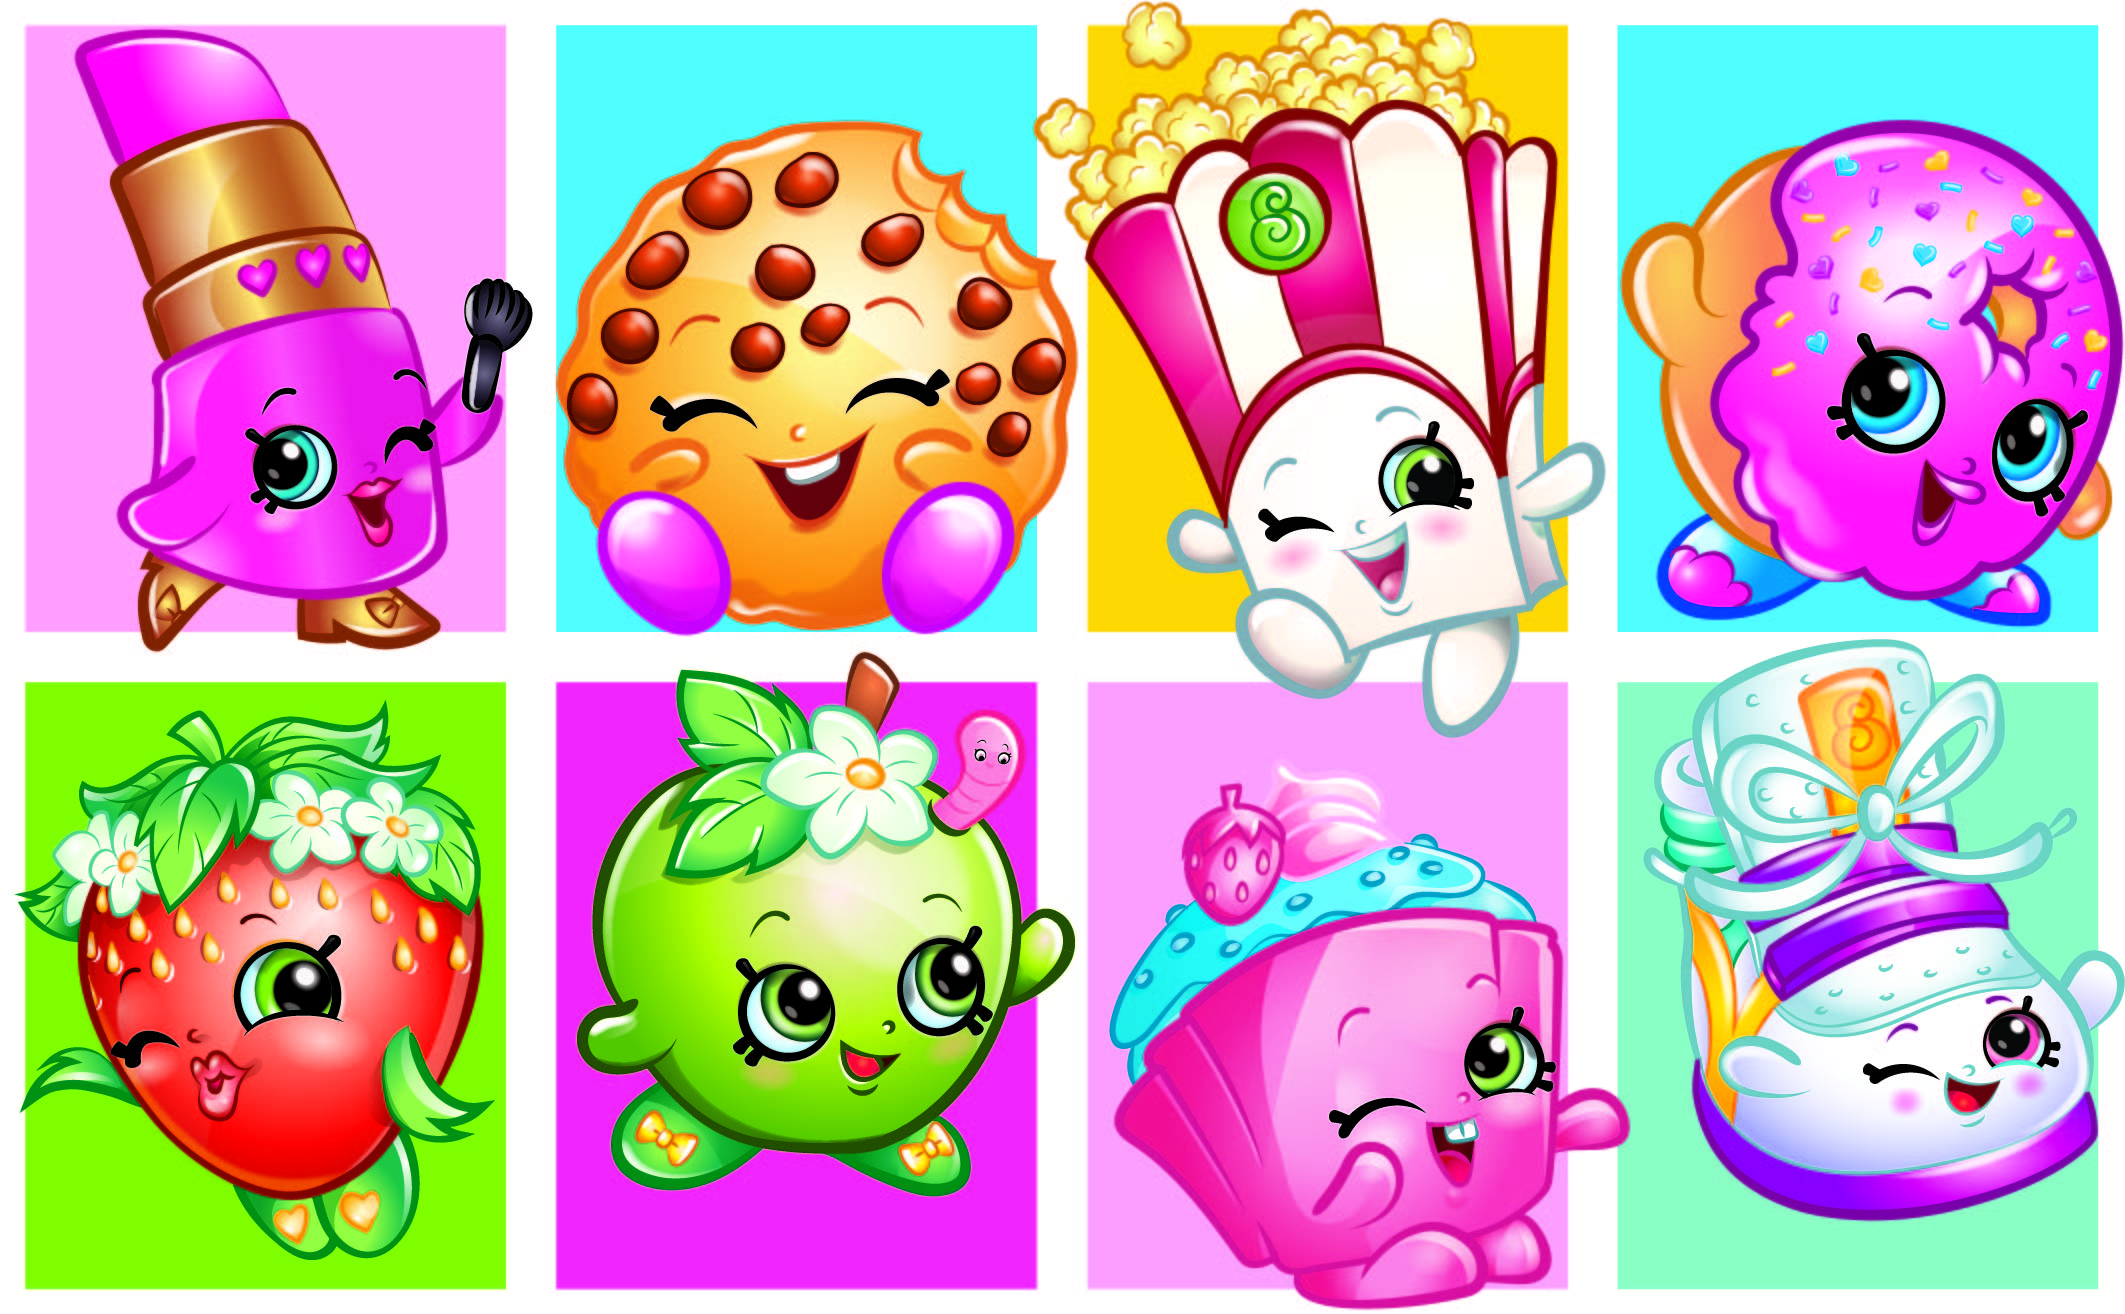 Flair adds to Shopkins collection Kidscreen